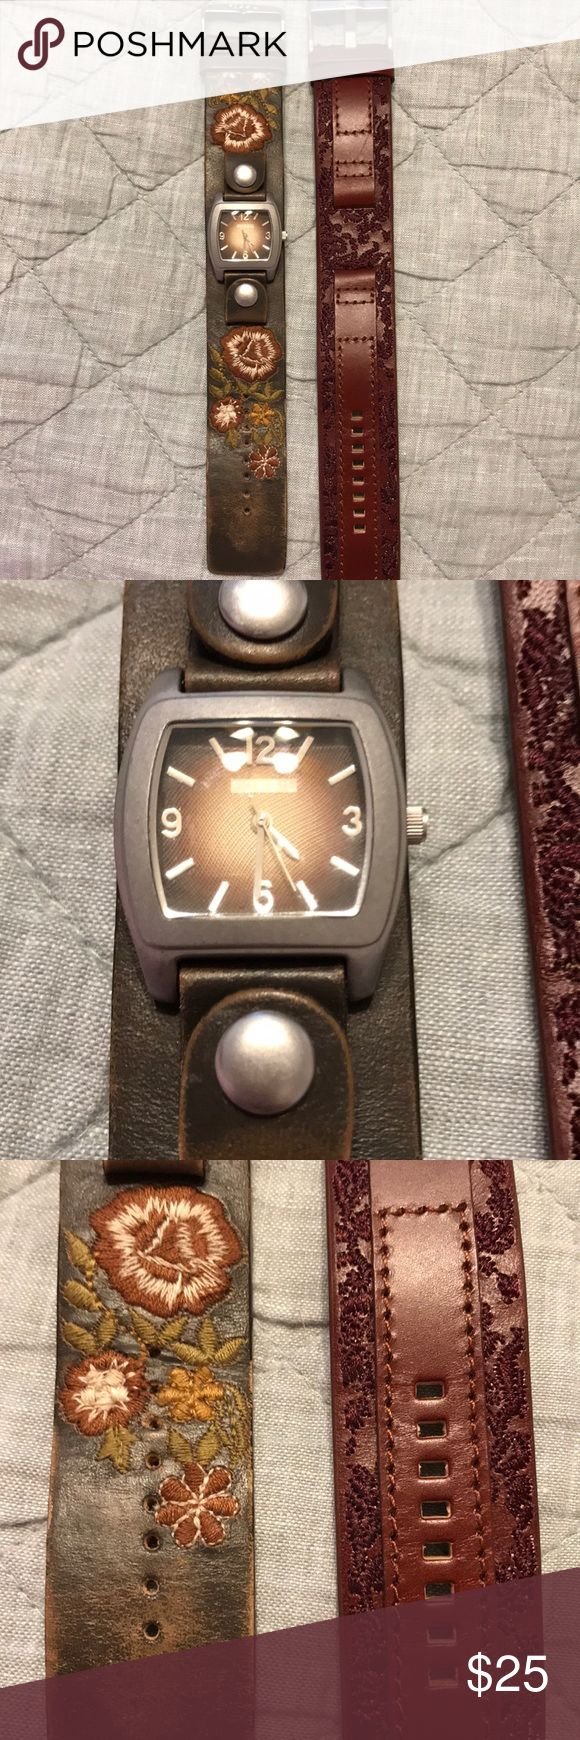 Fossil watch face and two wrist bands One Fossil watch face and two wrist bands feature intricate embroidery on genuine leather. The beautiful fall tones complement the silver and brown watch face and will match everything! Watch needs battery replacement. Fossil Accessories Watches